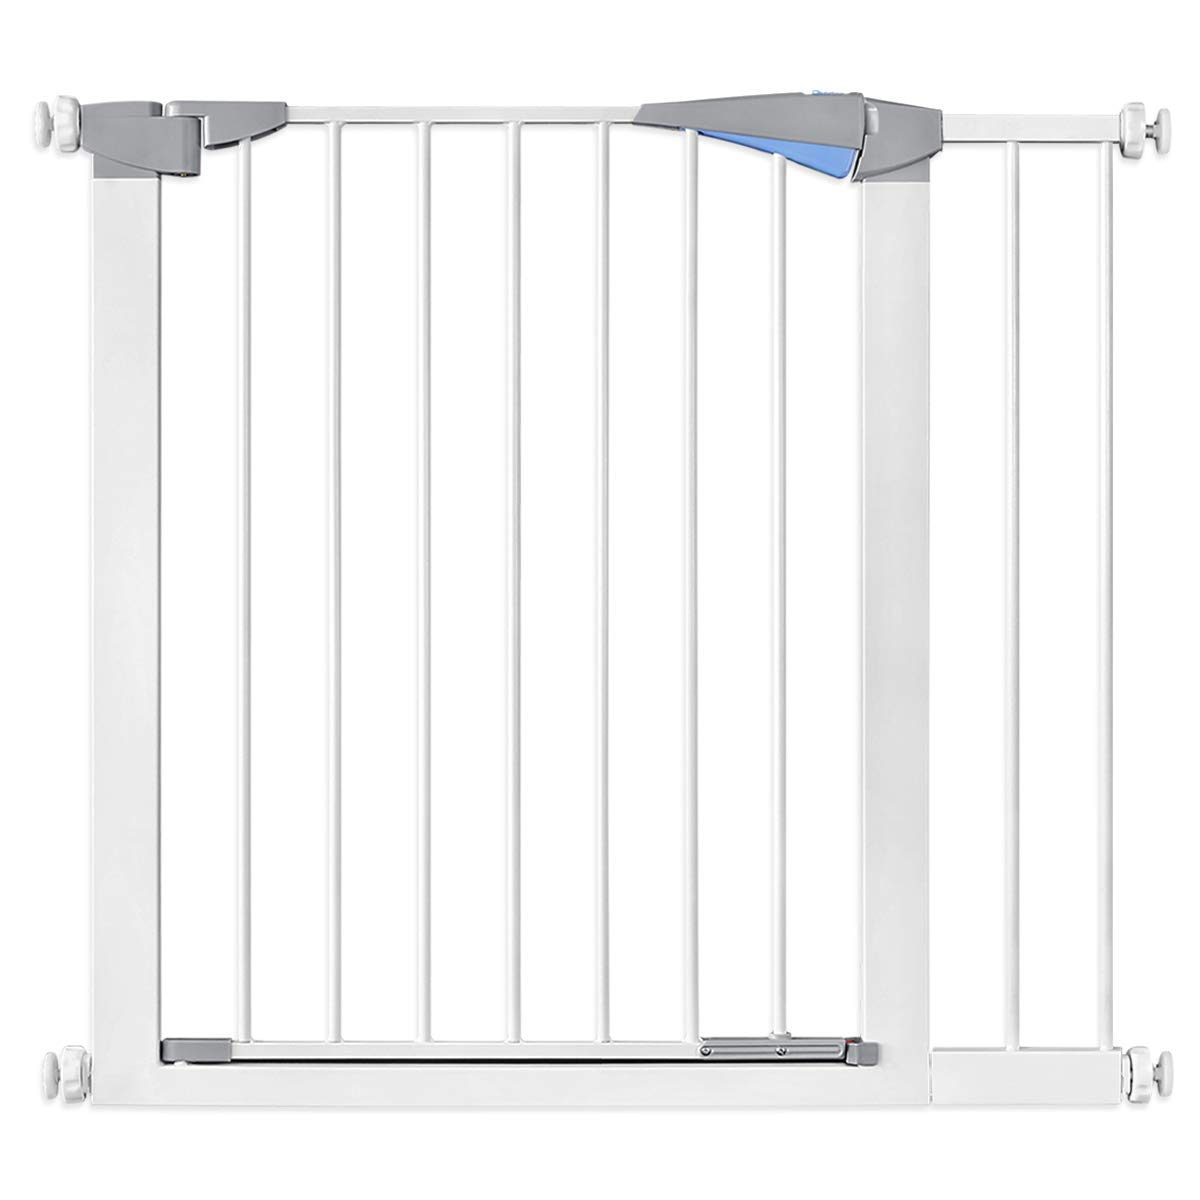 """34.6"""" Auto Close Safety Baby Gate, Extra Wide Walk Thru Dog Gate with Pressure or Hardware Mount for Stairs, Doorways and Hallways, Includes 5.5"""" Extension Kits, White"""